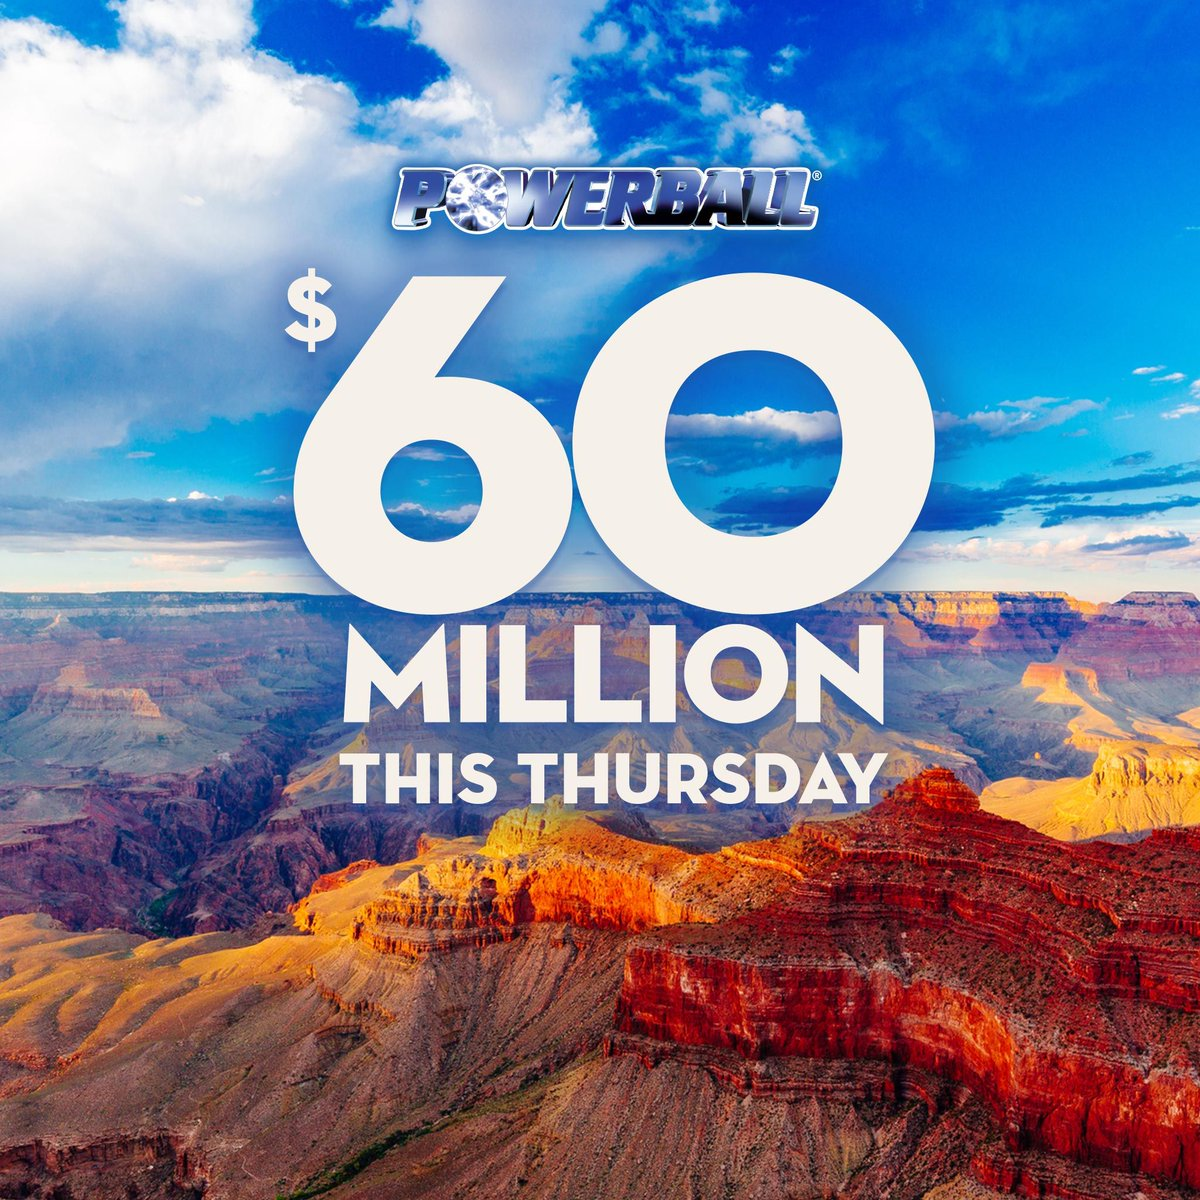 Powerball is an incredible $60,000,000 this Thursday! Read about some past Powerball winners on our blog and how you could be next. https://t.co/SpSSRb3RTr https://t.co/IOvC4H85if